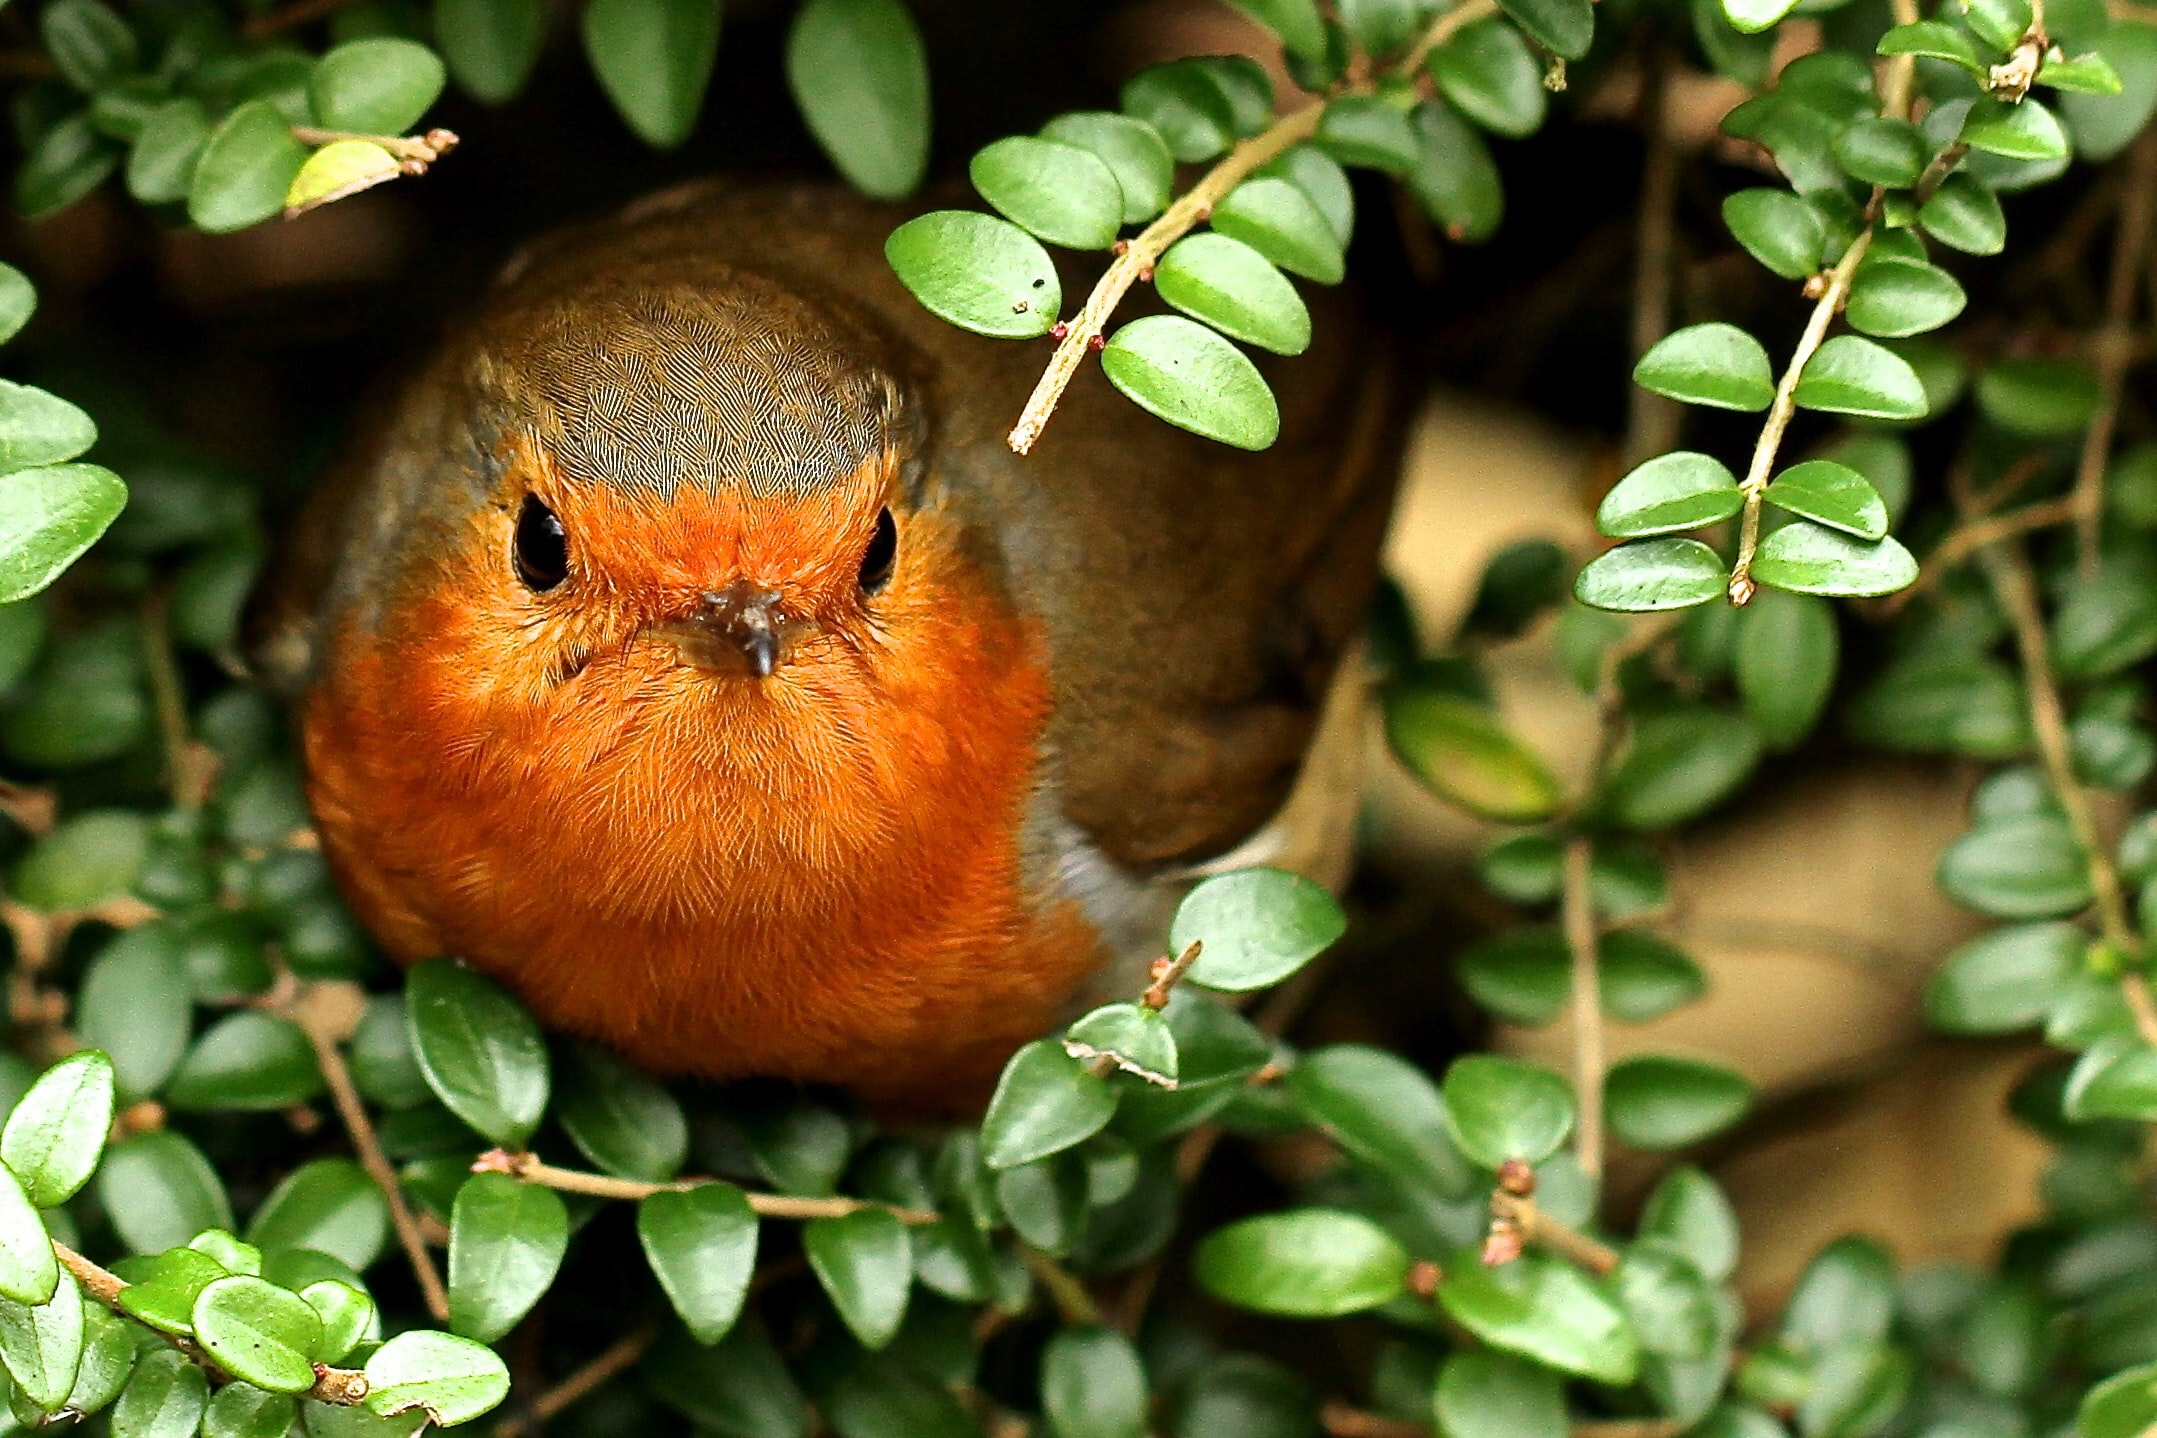 brown and orange bird perched on green plant during daytime